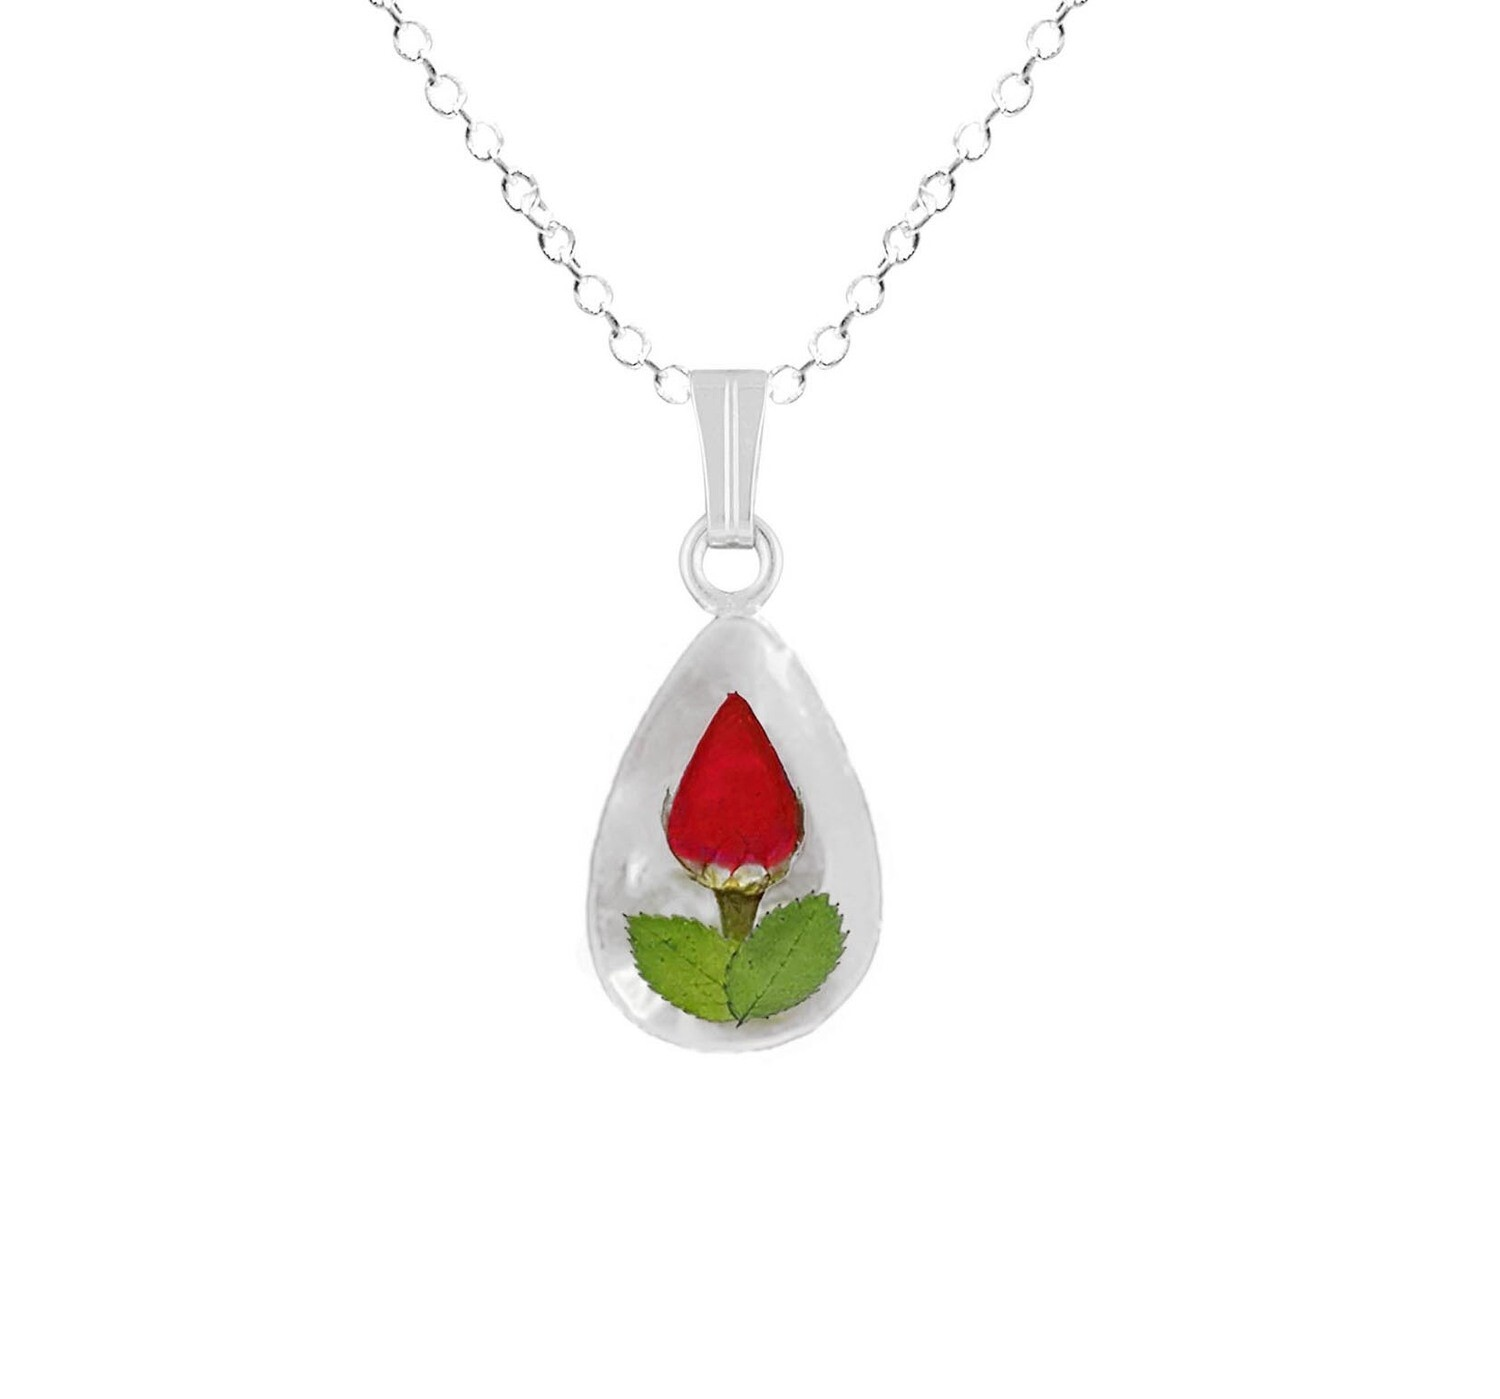 Rose Necklace, Small Teardrop, White Background